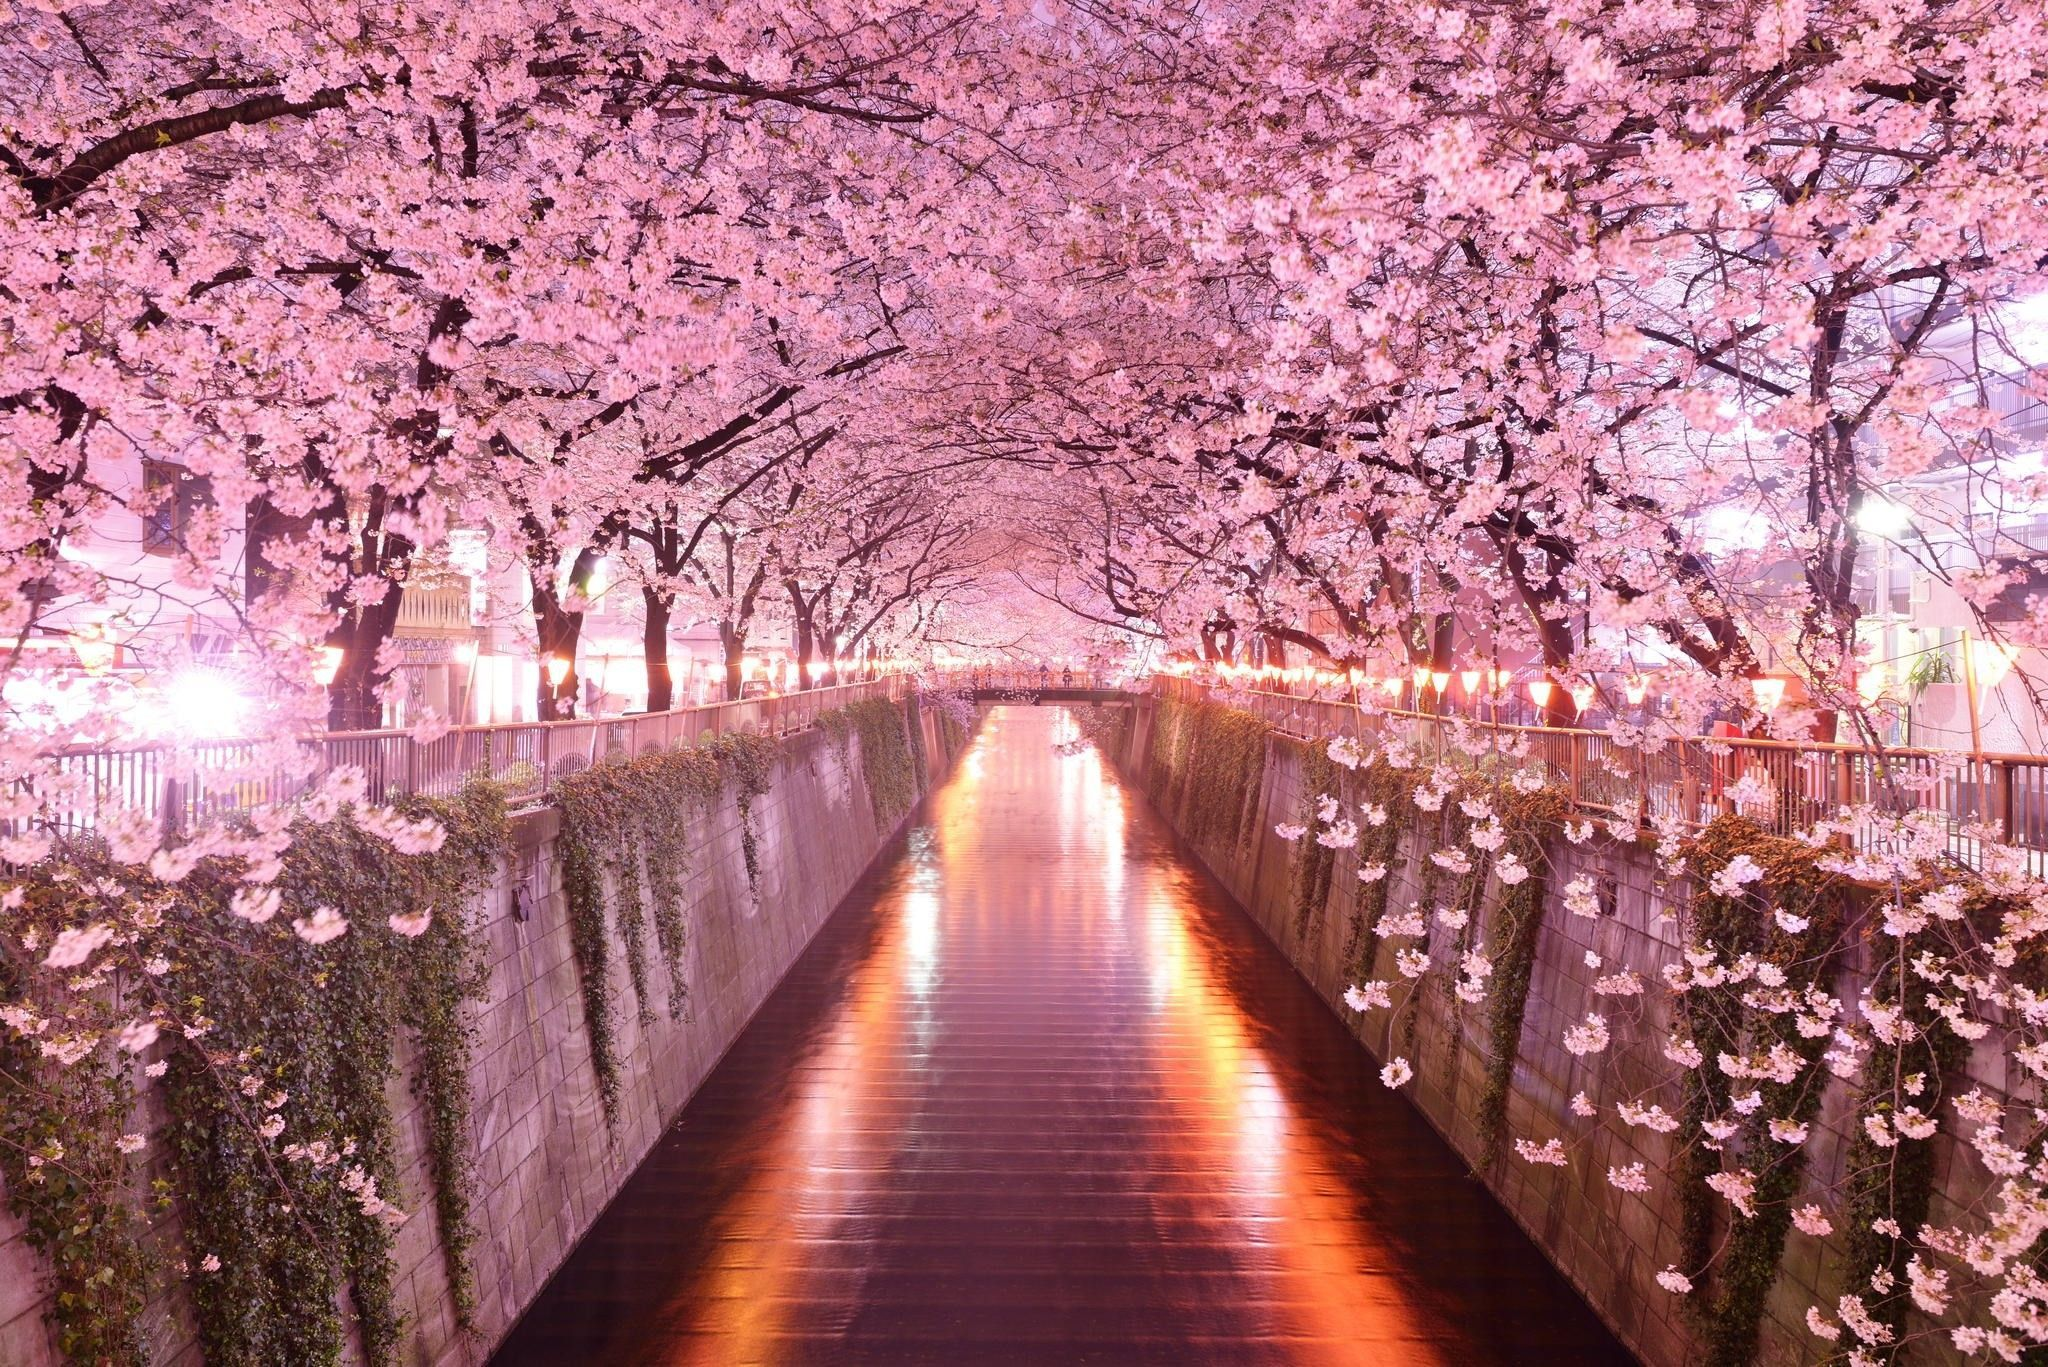 Cherry Blossom Desktop Wallpapers Top Free Cherry Blossom Desktop Backgrounds Wallpaperaccess Wisteria Tree Cherry Blossom Wallpaper Tree Tunnel